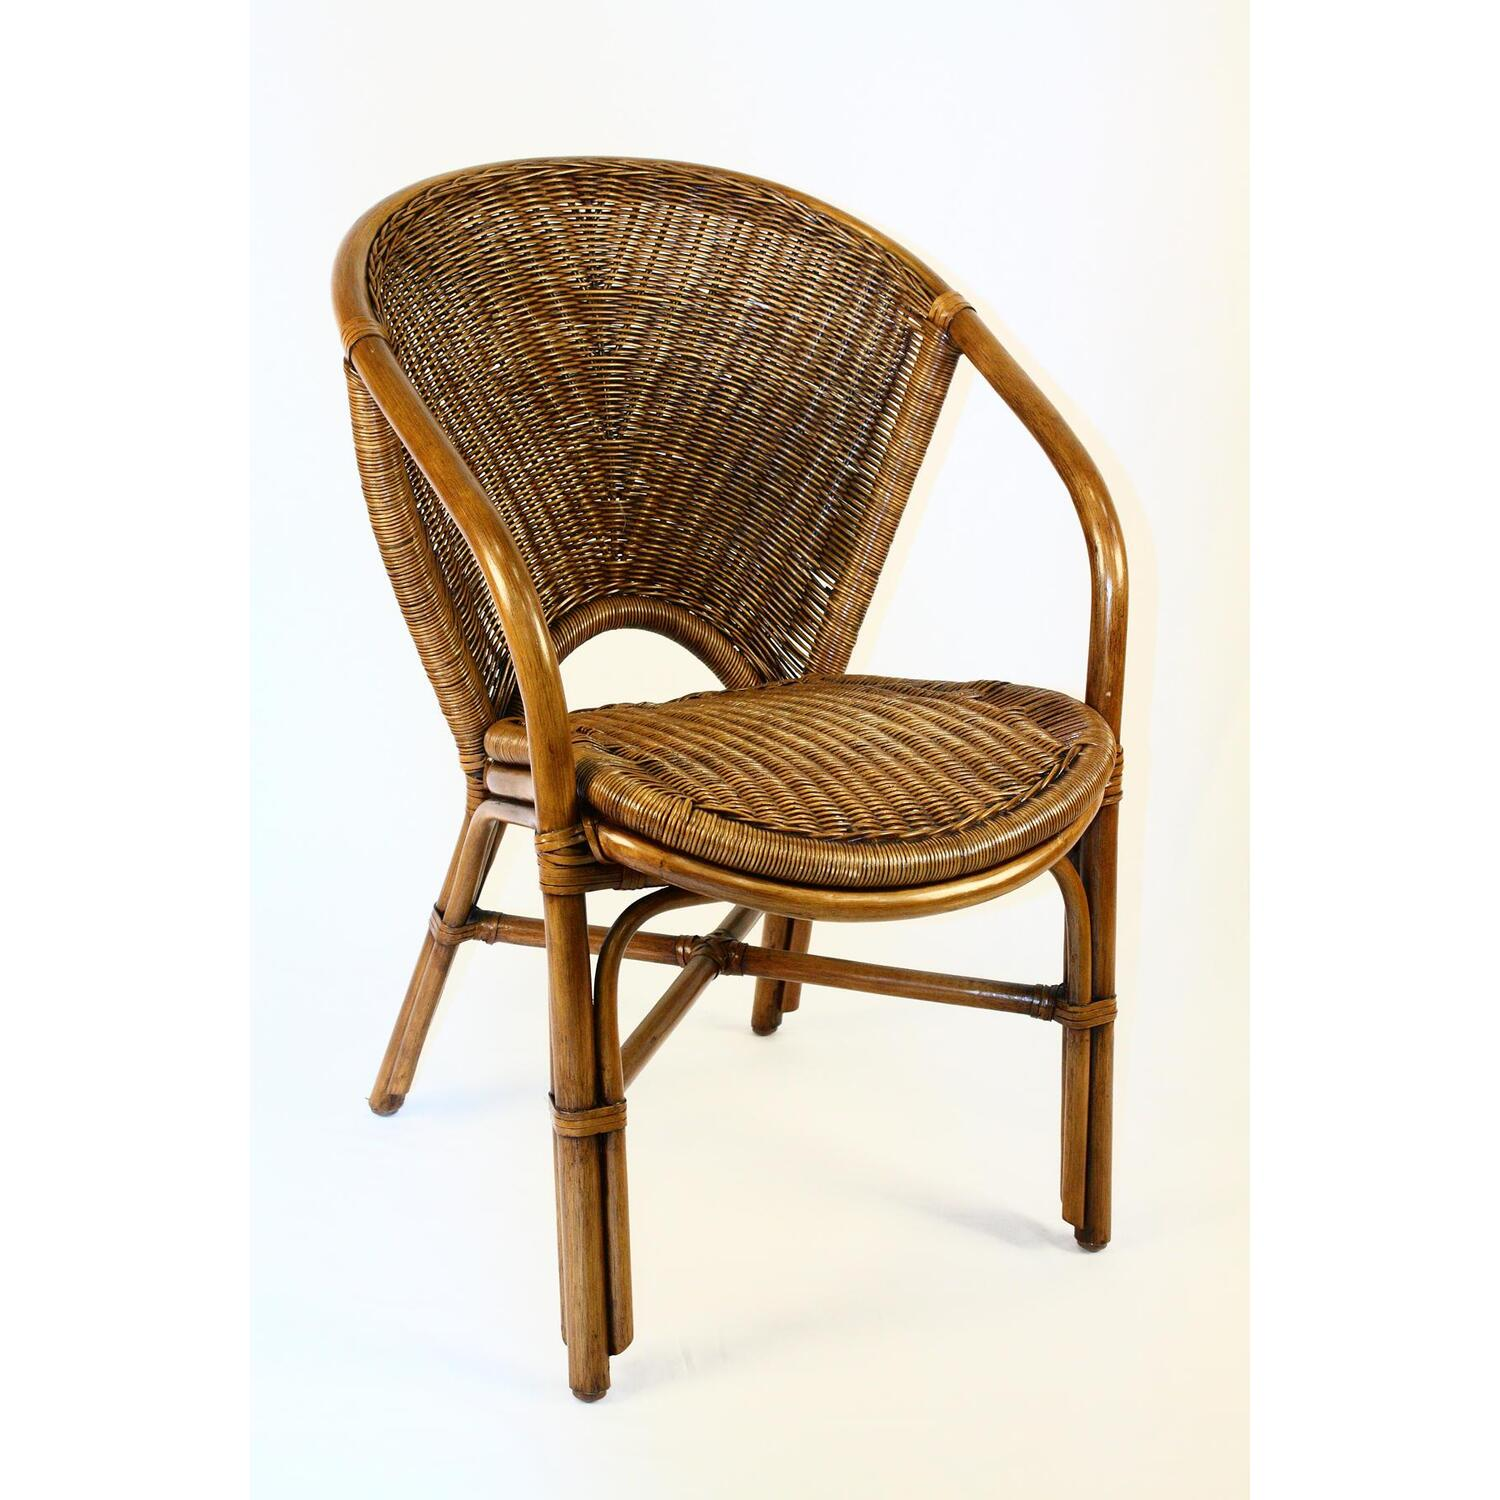 Rattan Hospitality Rattan Indoor Rattan & Wicker Arm Chair By Oj